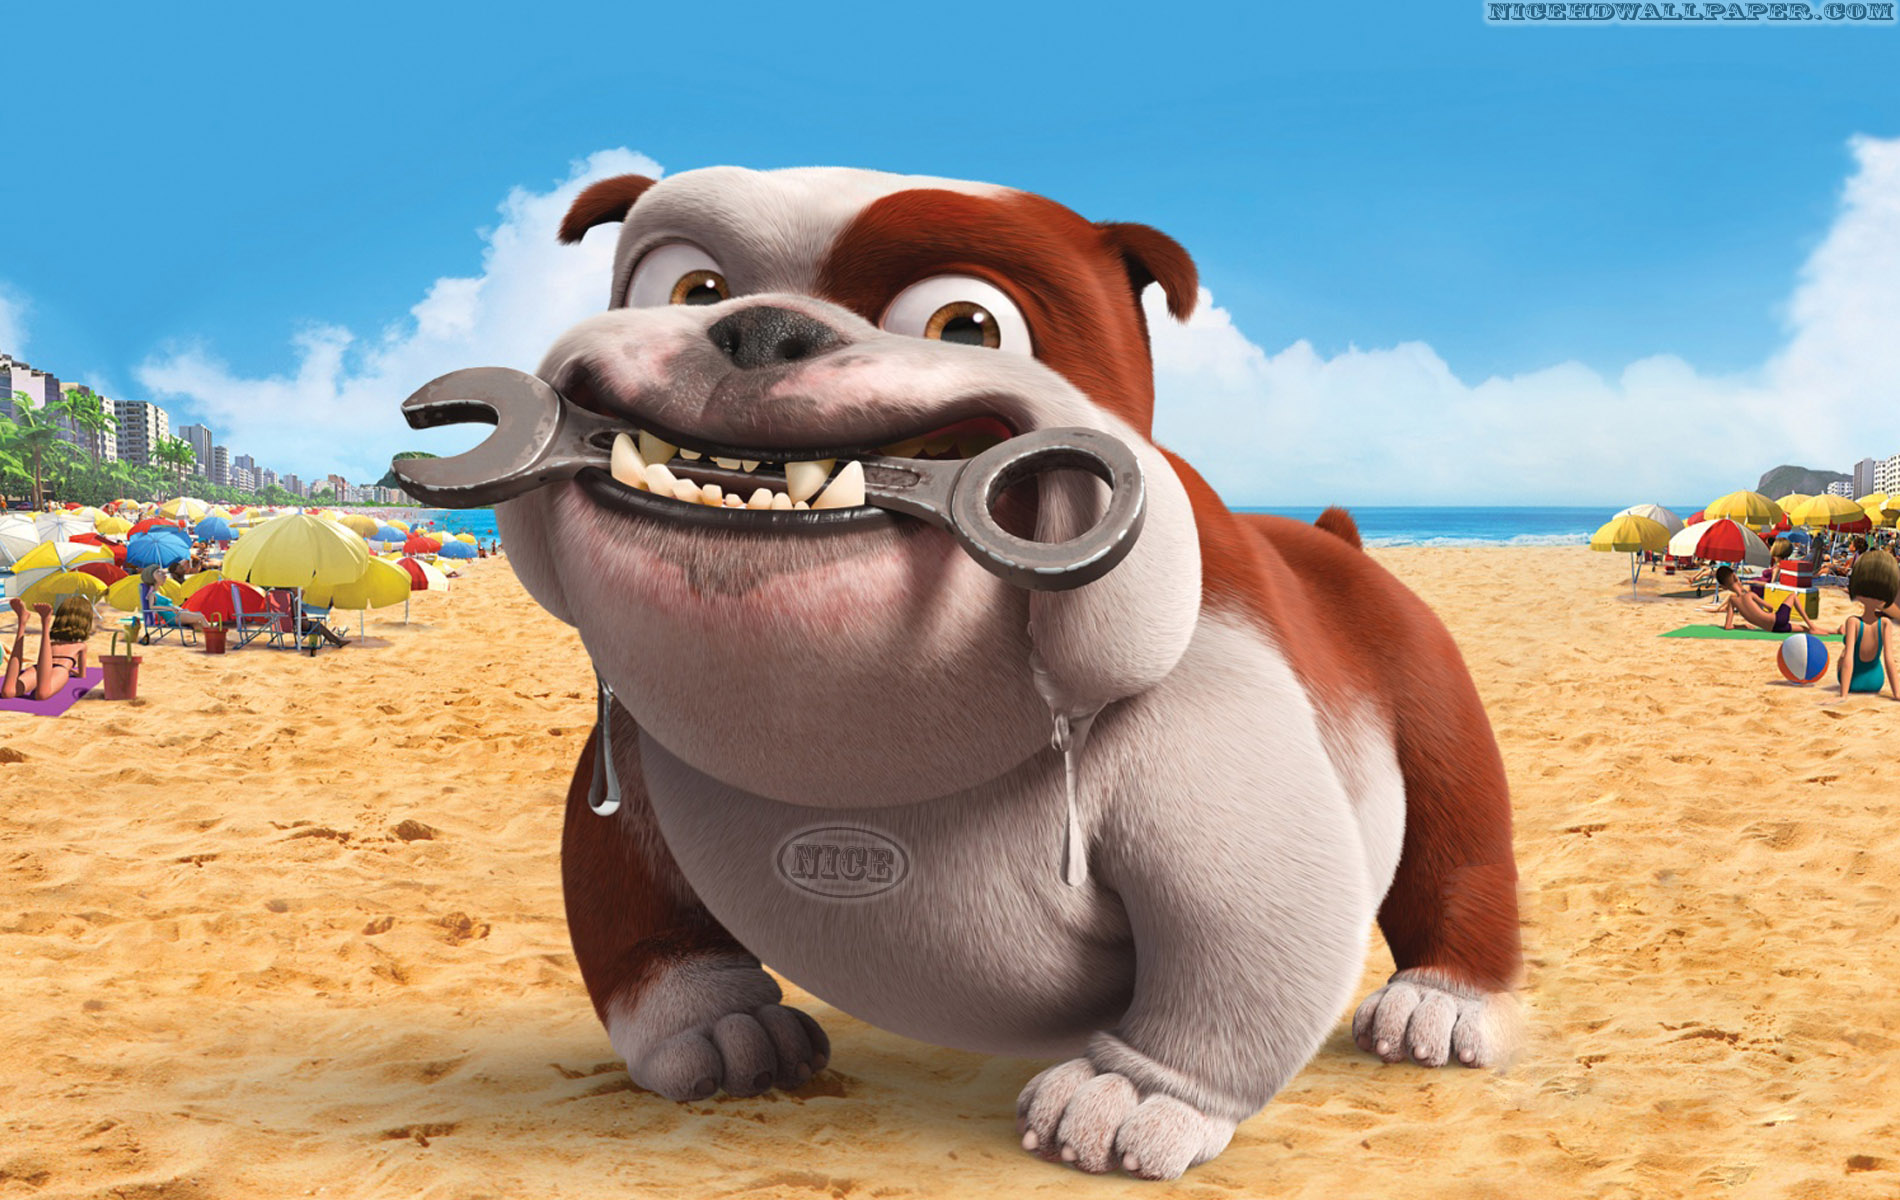 Funny Cartoon Movies 10 Background Wallpaper - Funnypicture org